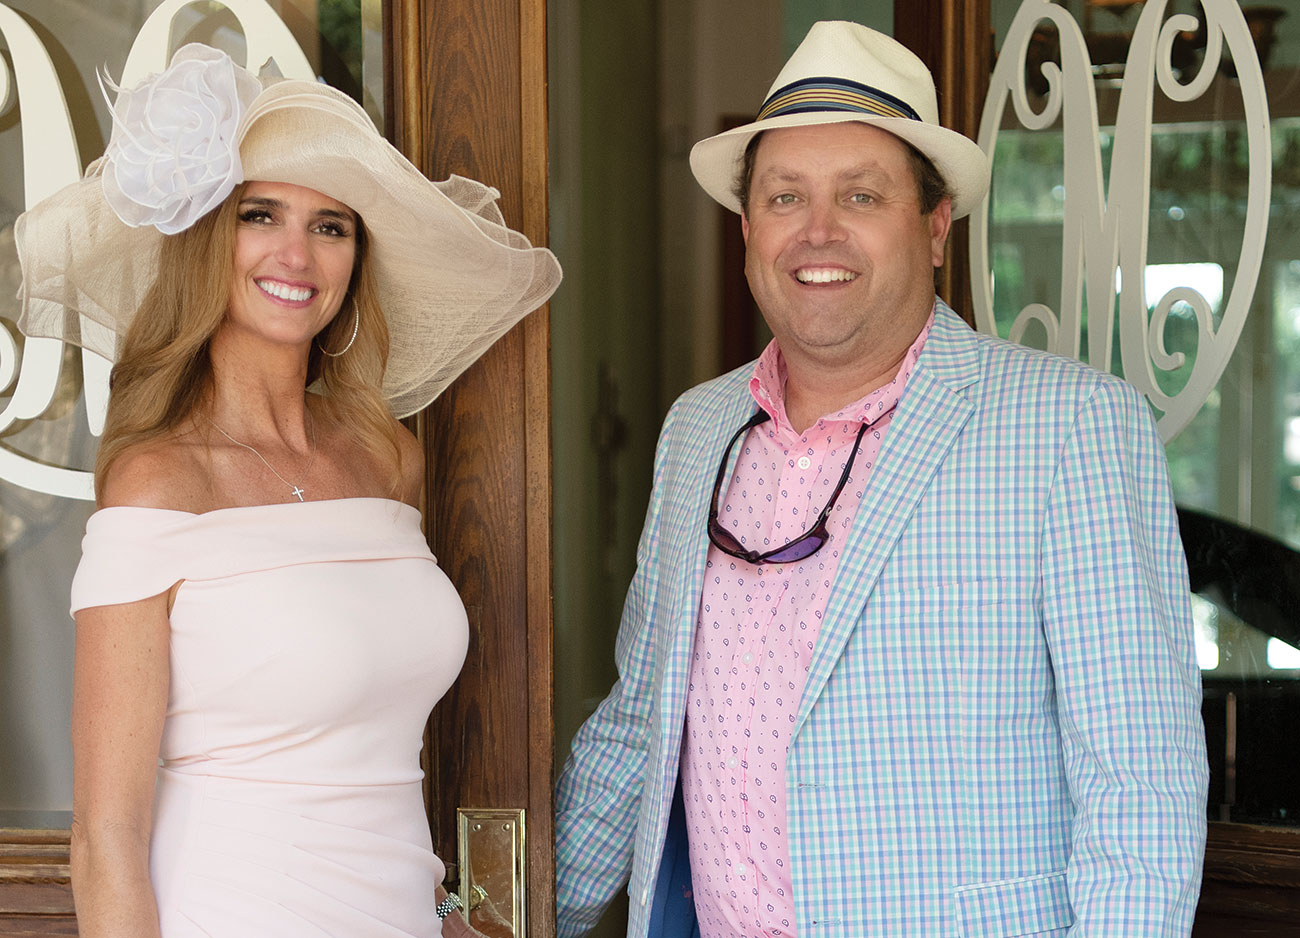 Man and woman dressed in Kentucky Derby party attire